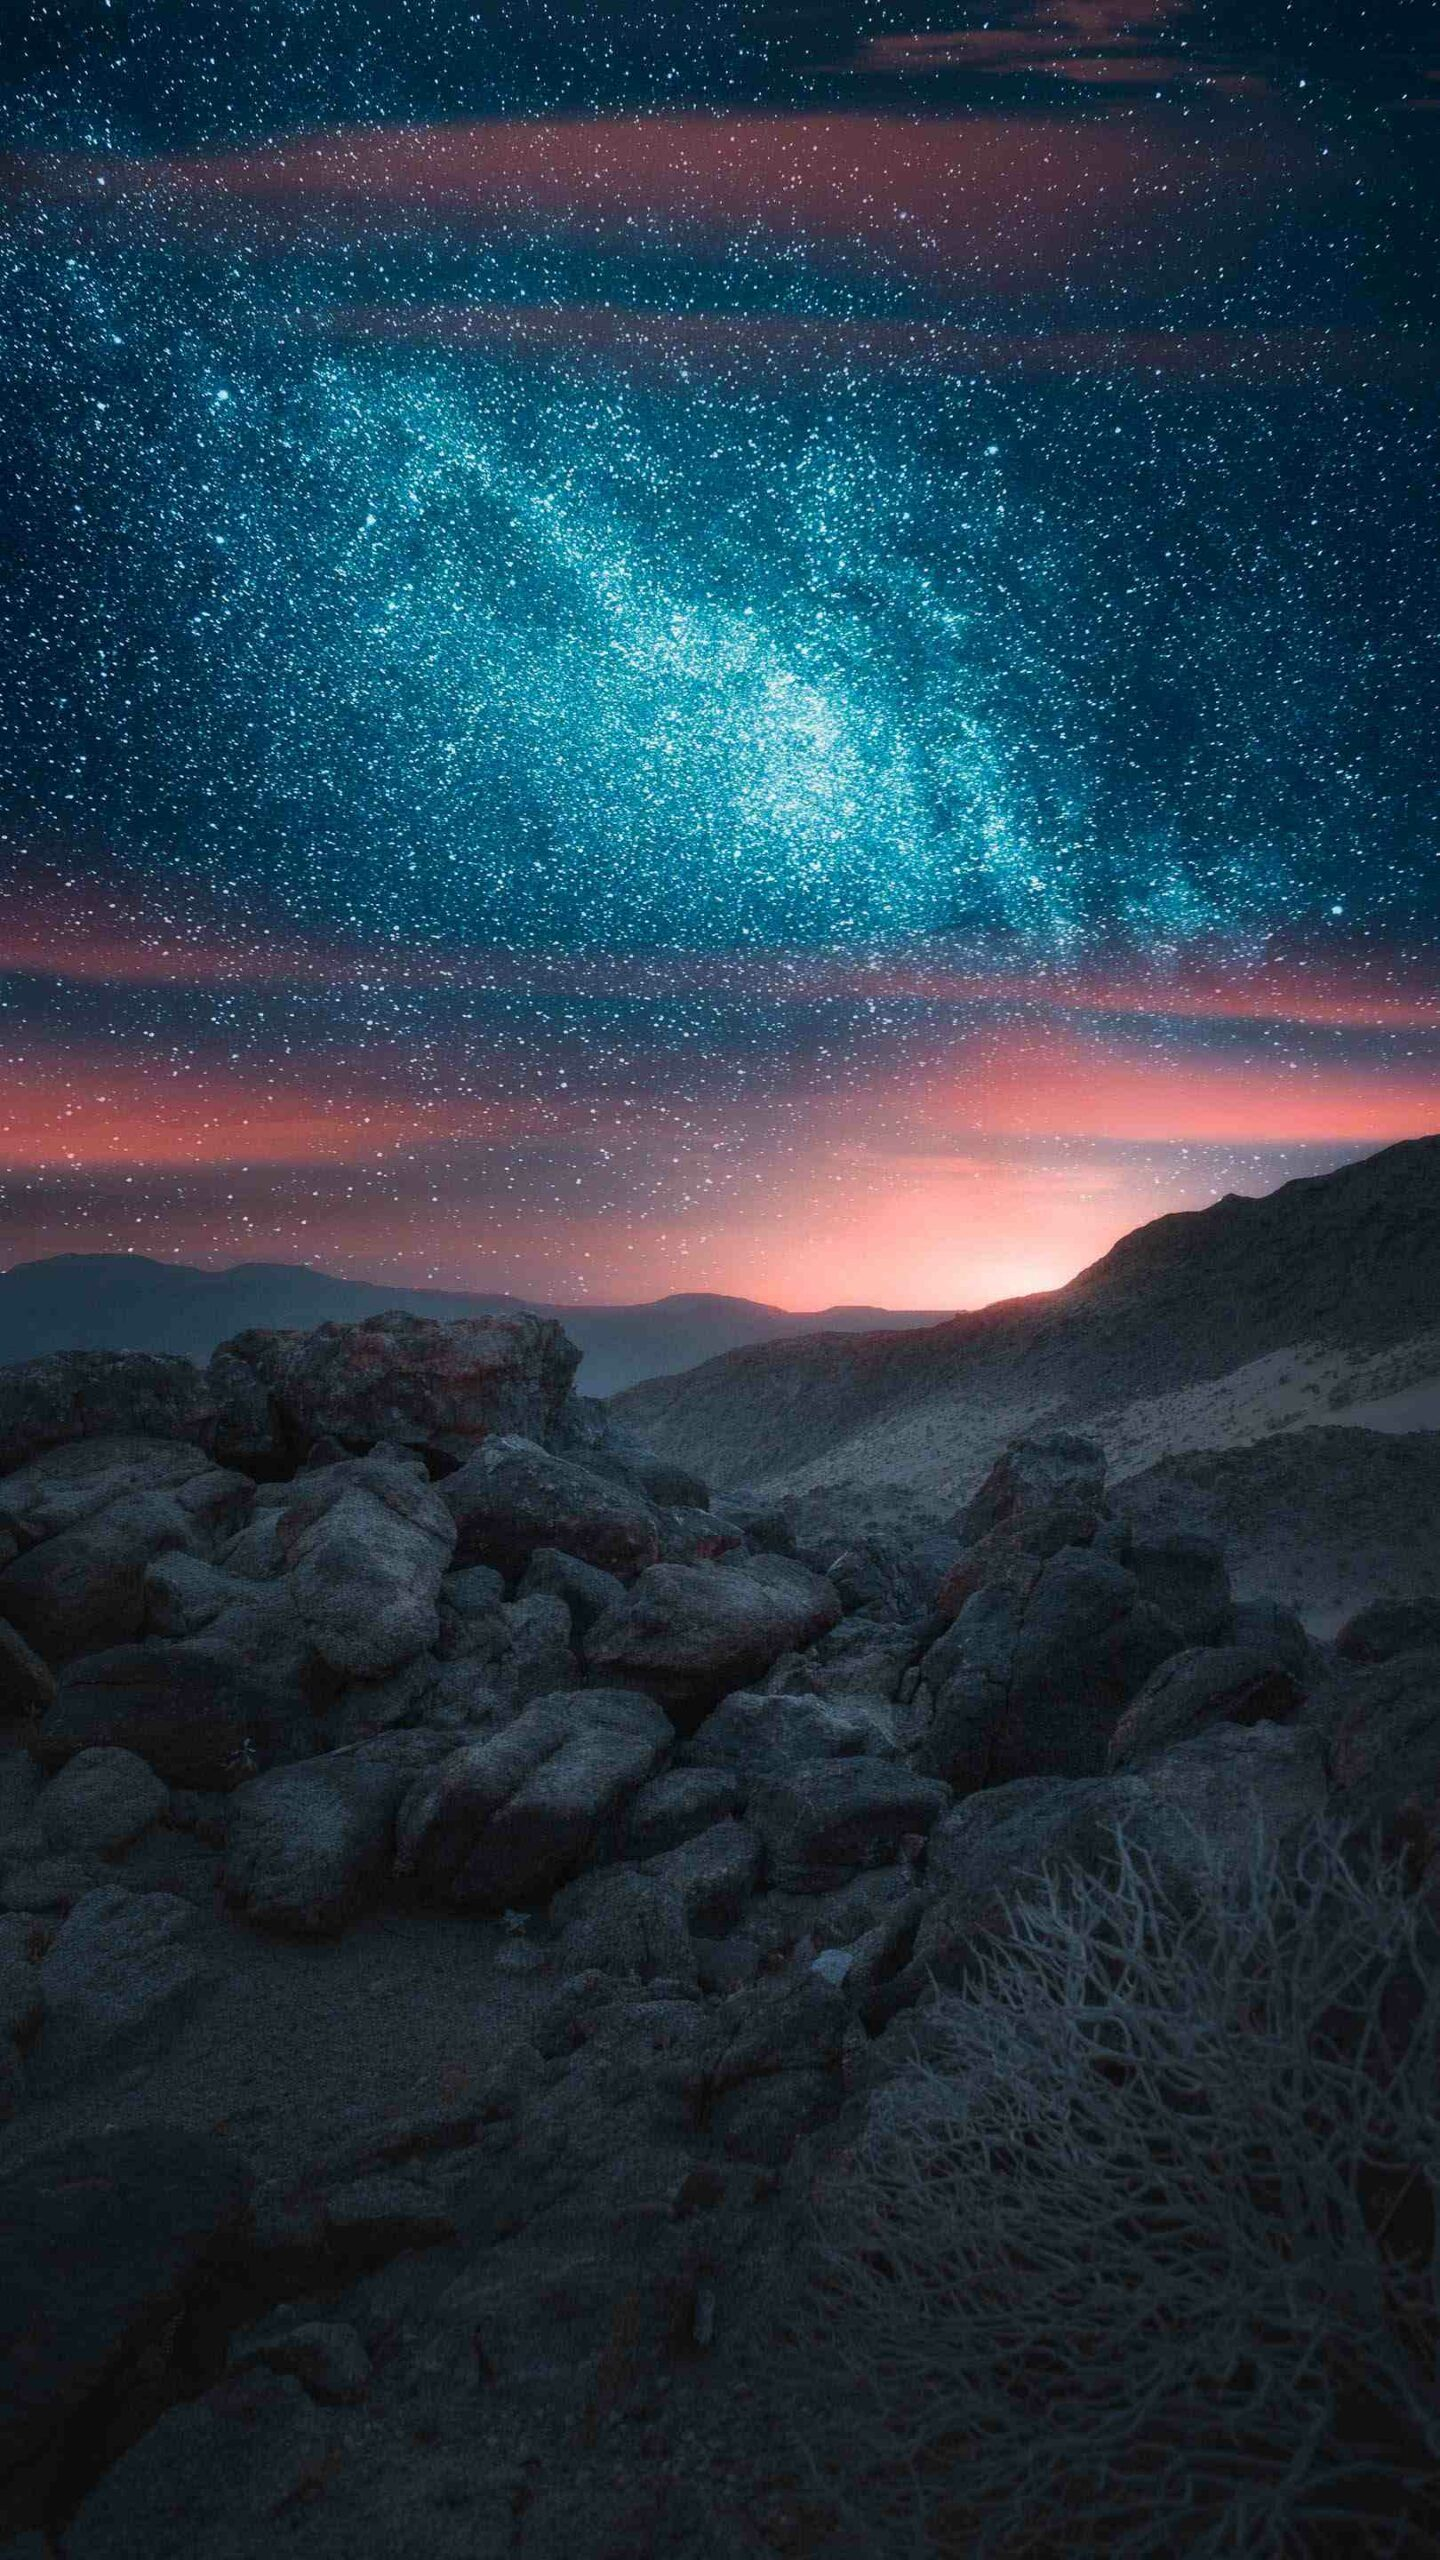 Glimpse Into The Unknown Iphone Wallpaper In 2020 Iphone Backgrounds Nature Hd Wallpaper Android Starry Night Picture